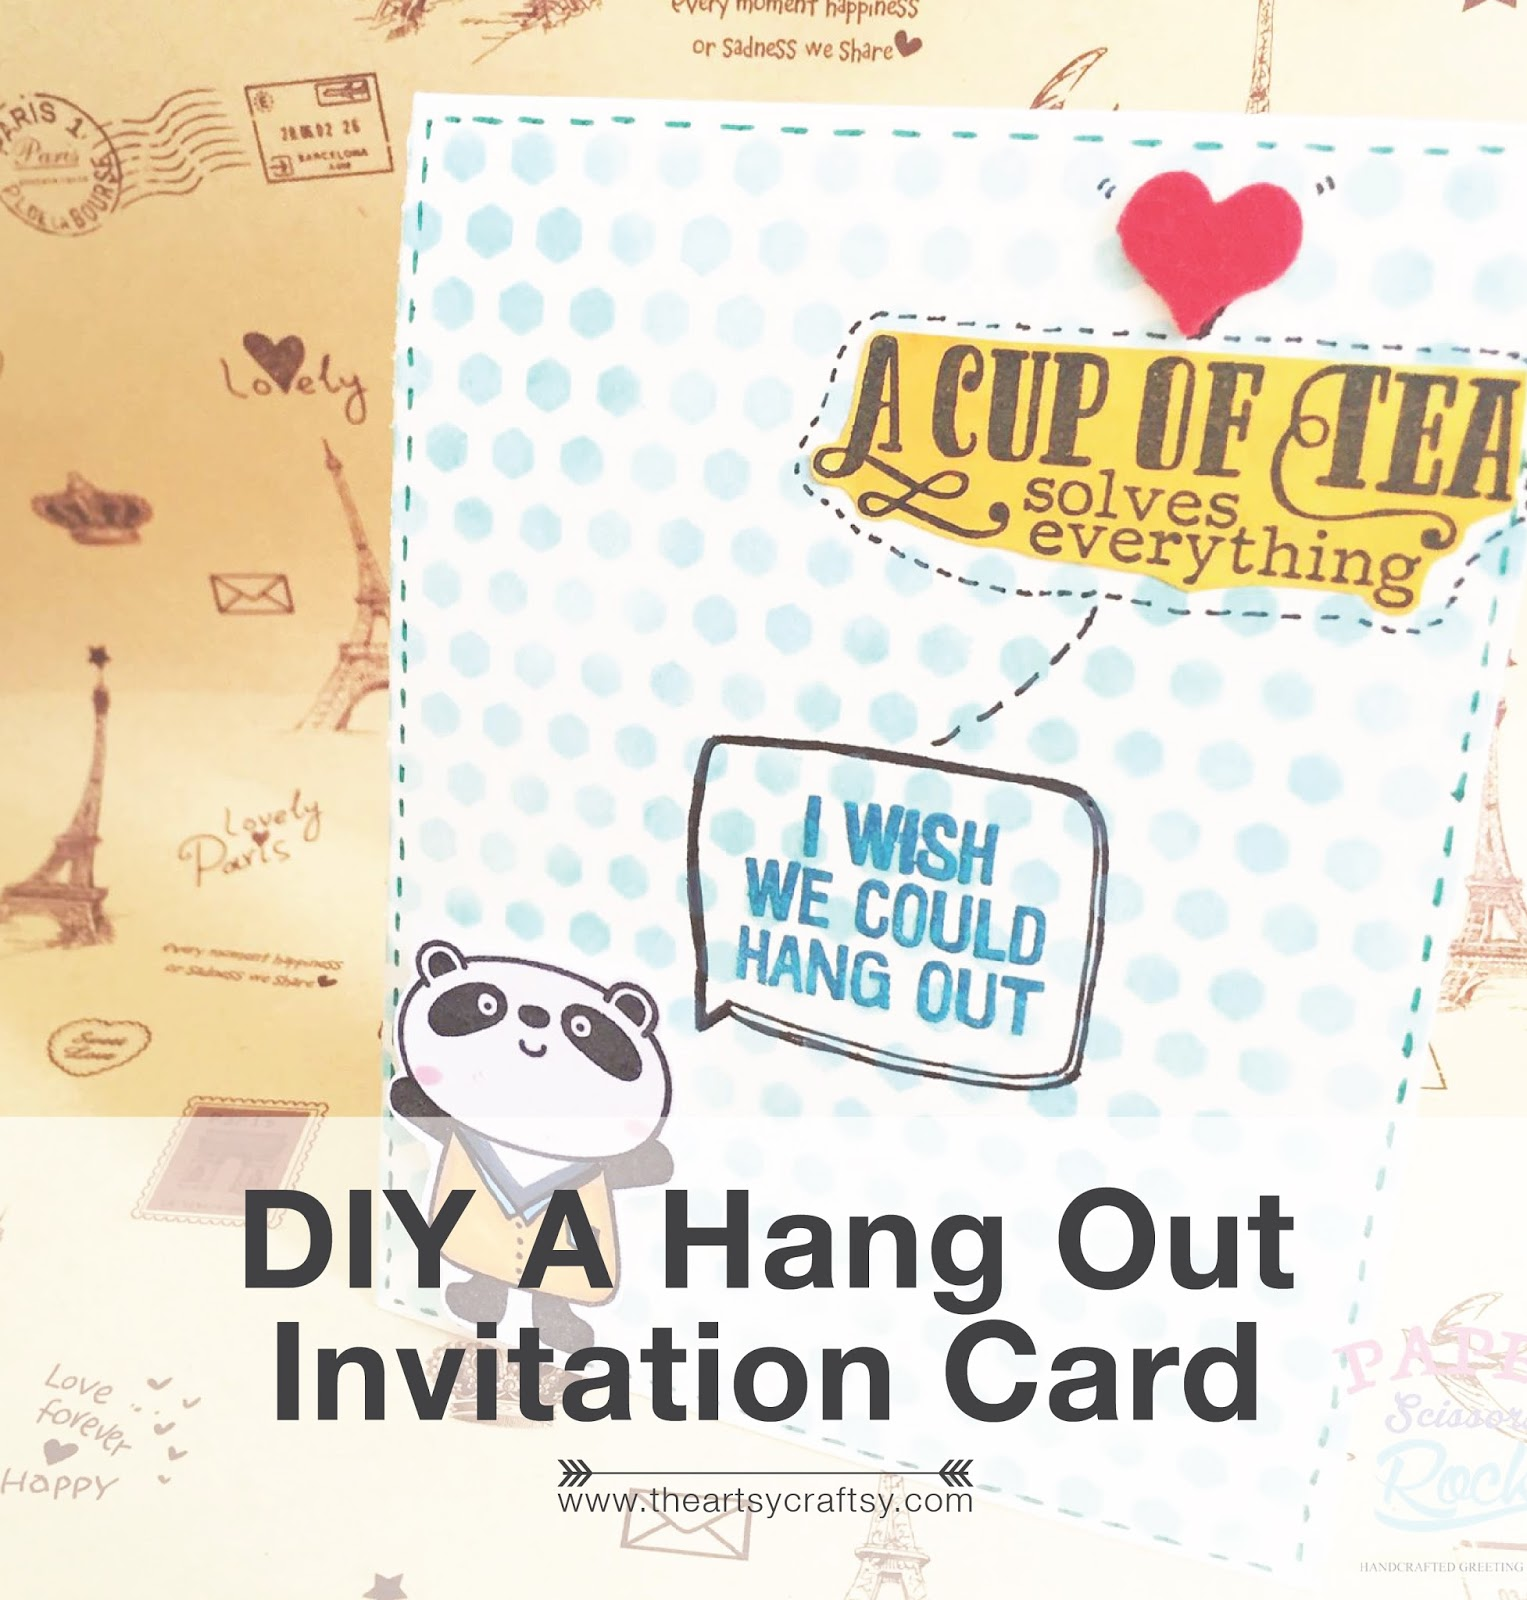 Diy make cute hang out invitation card easy tutorial stopboris Image collections